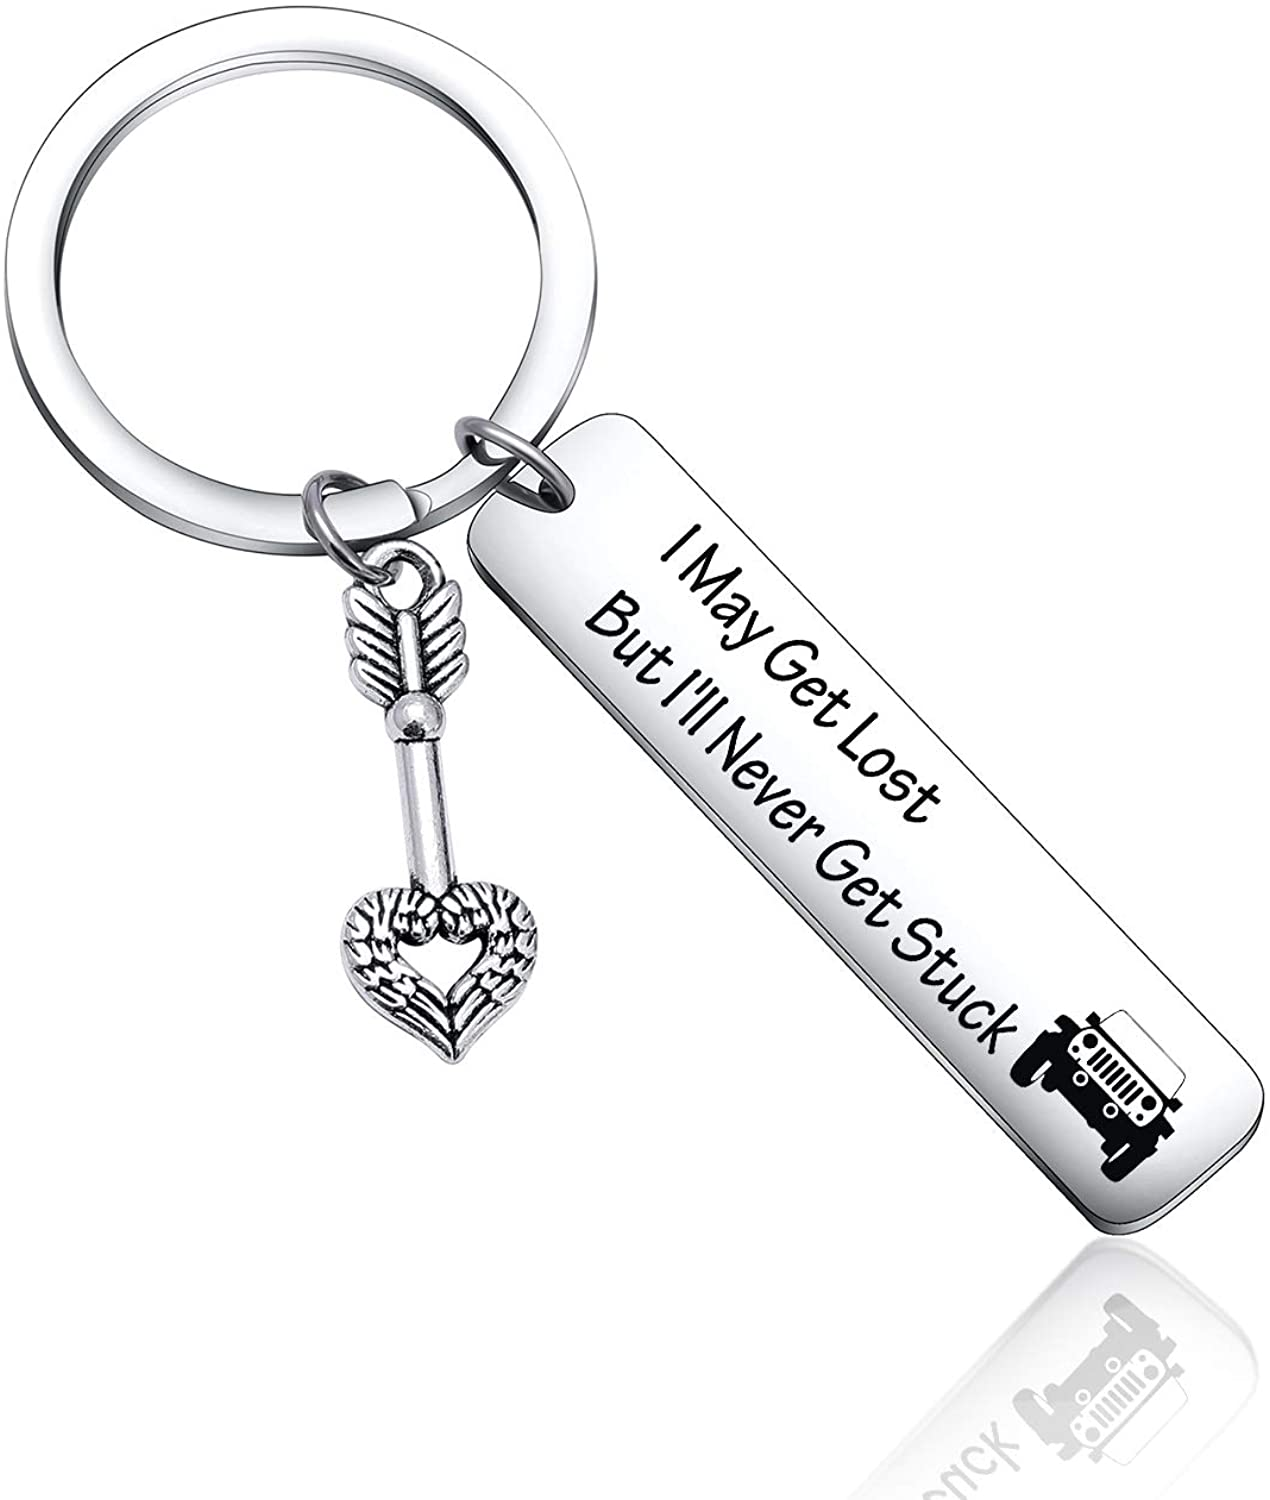 Jeep Driver I May Get Lost But I'll Never Get Stuck Keychain Gift for Jeep Lover,Driver Friends